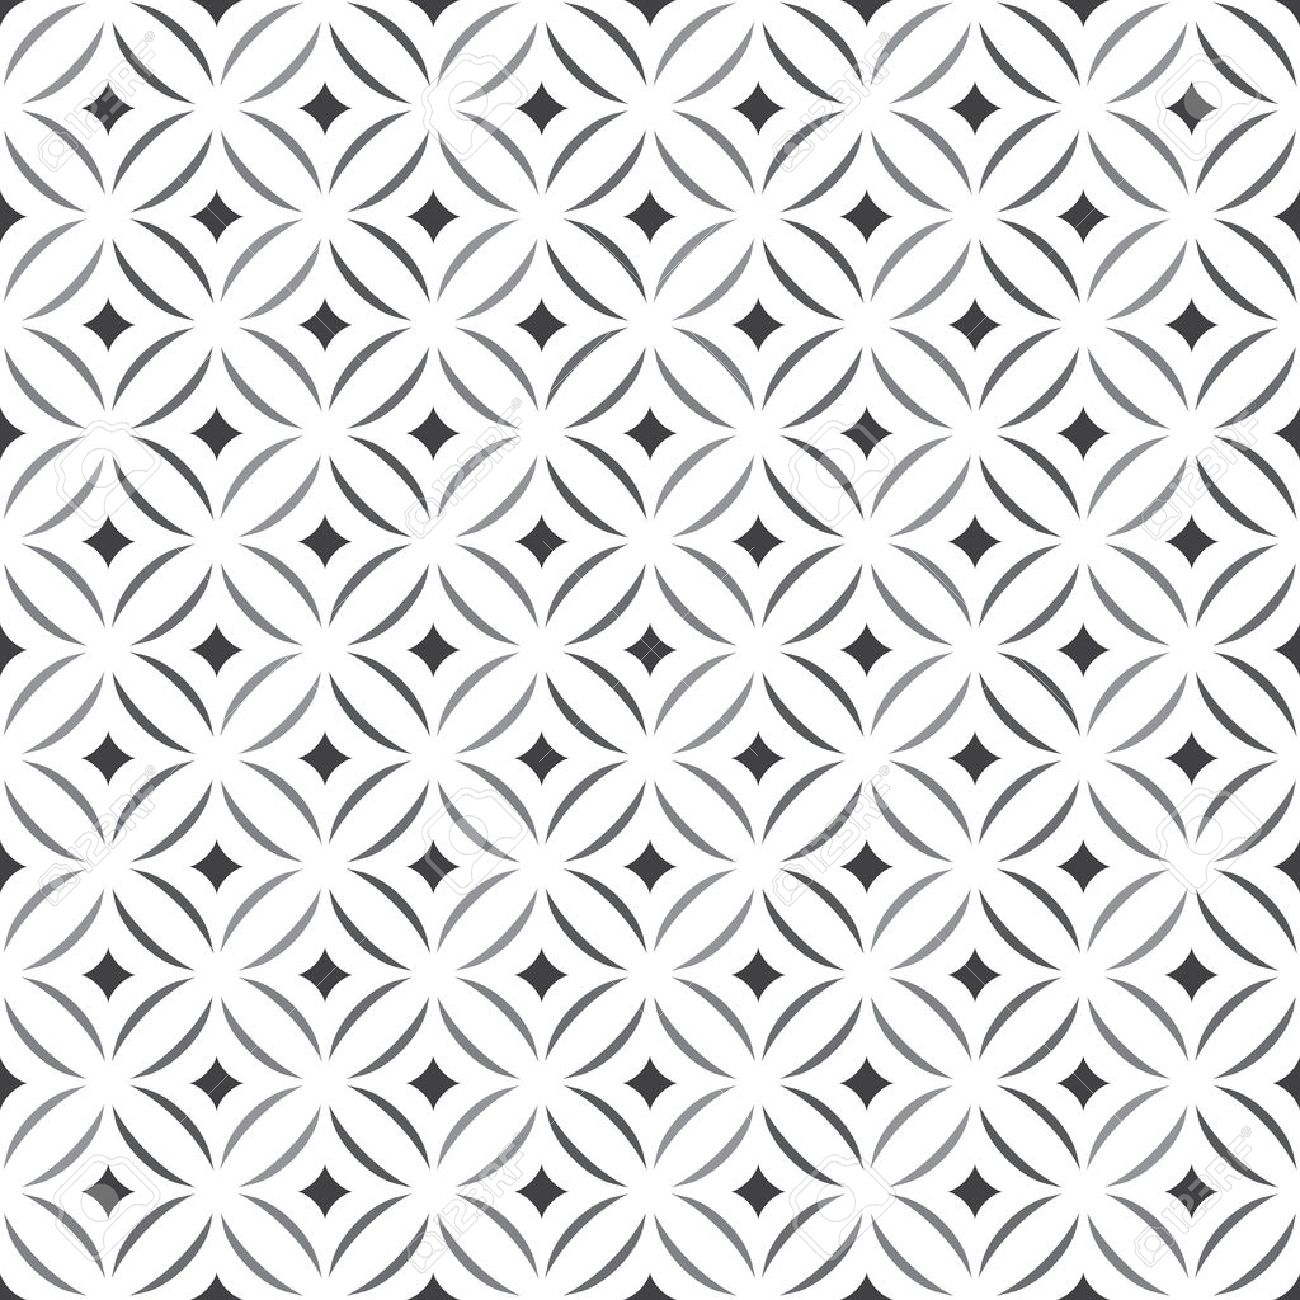 Seamless pattern. Stylish texture. Tile with regularly repeating geometrical elements, shapes, rhombuses, arches, crossed circles. Monochrome. Backdrop. Web. Vector element of graphic design Stock Vector - 41842161